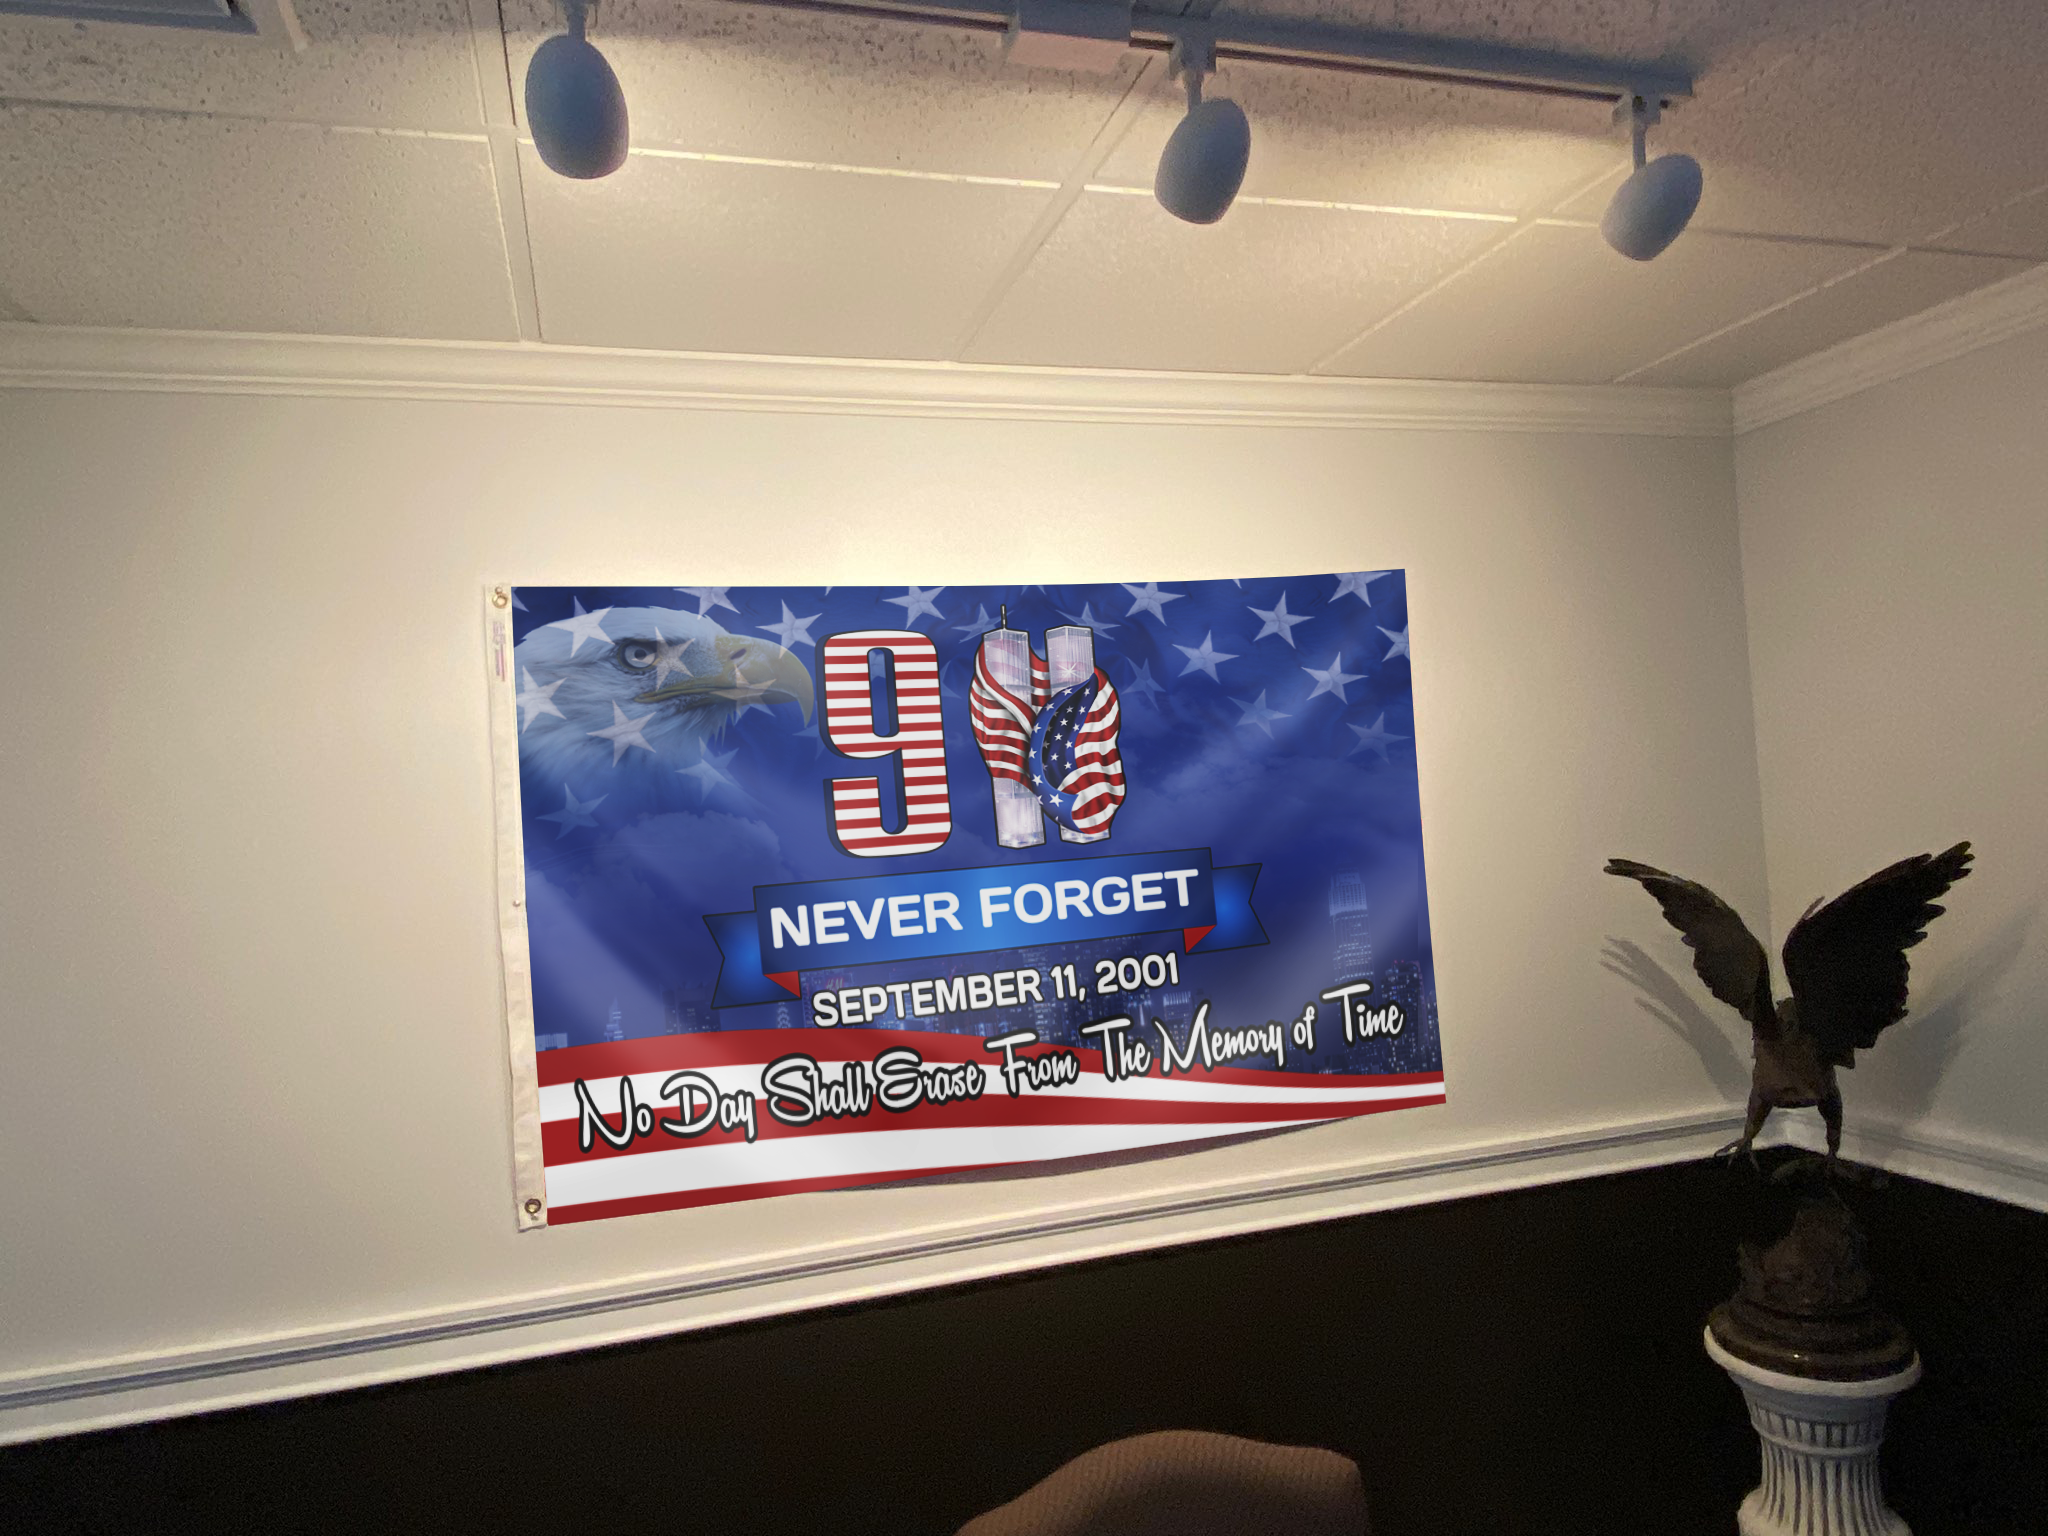 9 11 No Day Shall Erase From The Memory of Time Flag